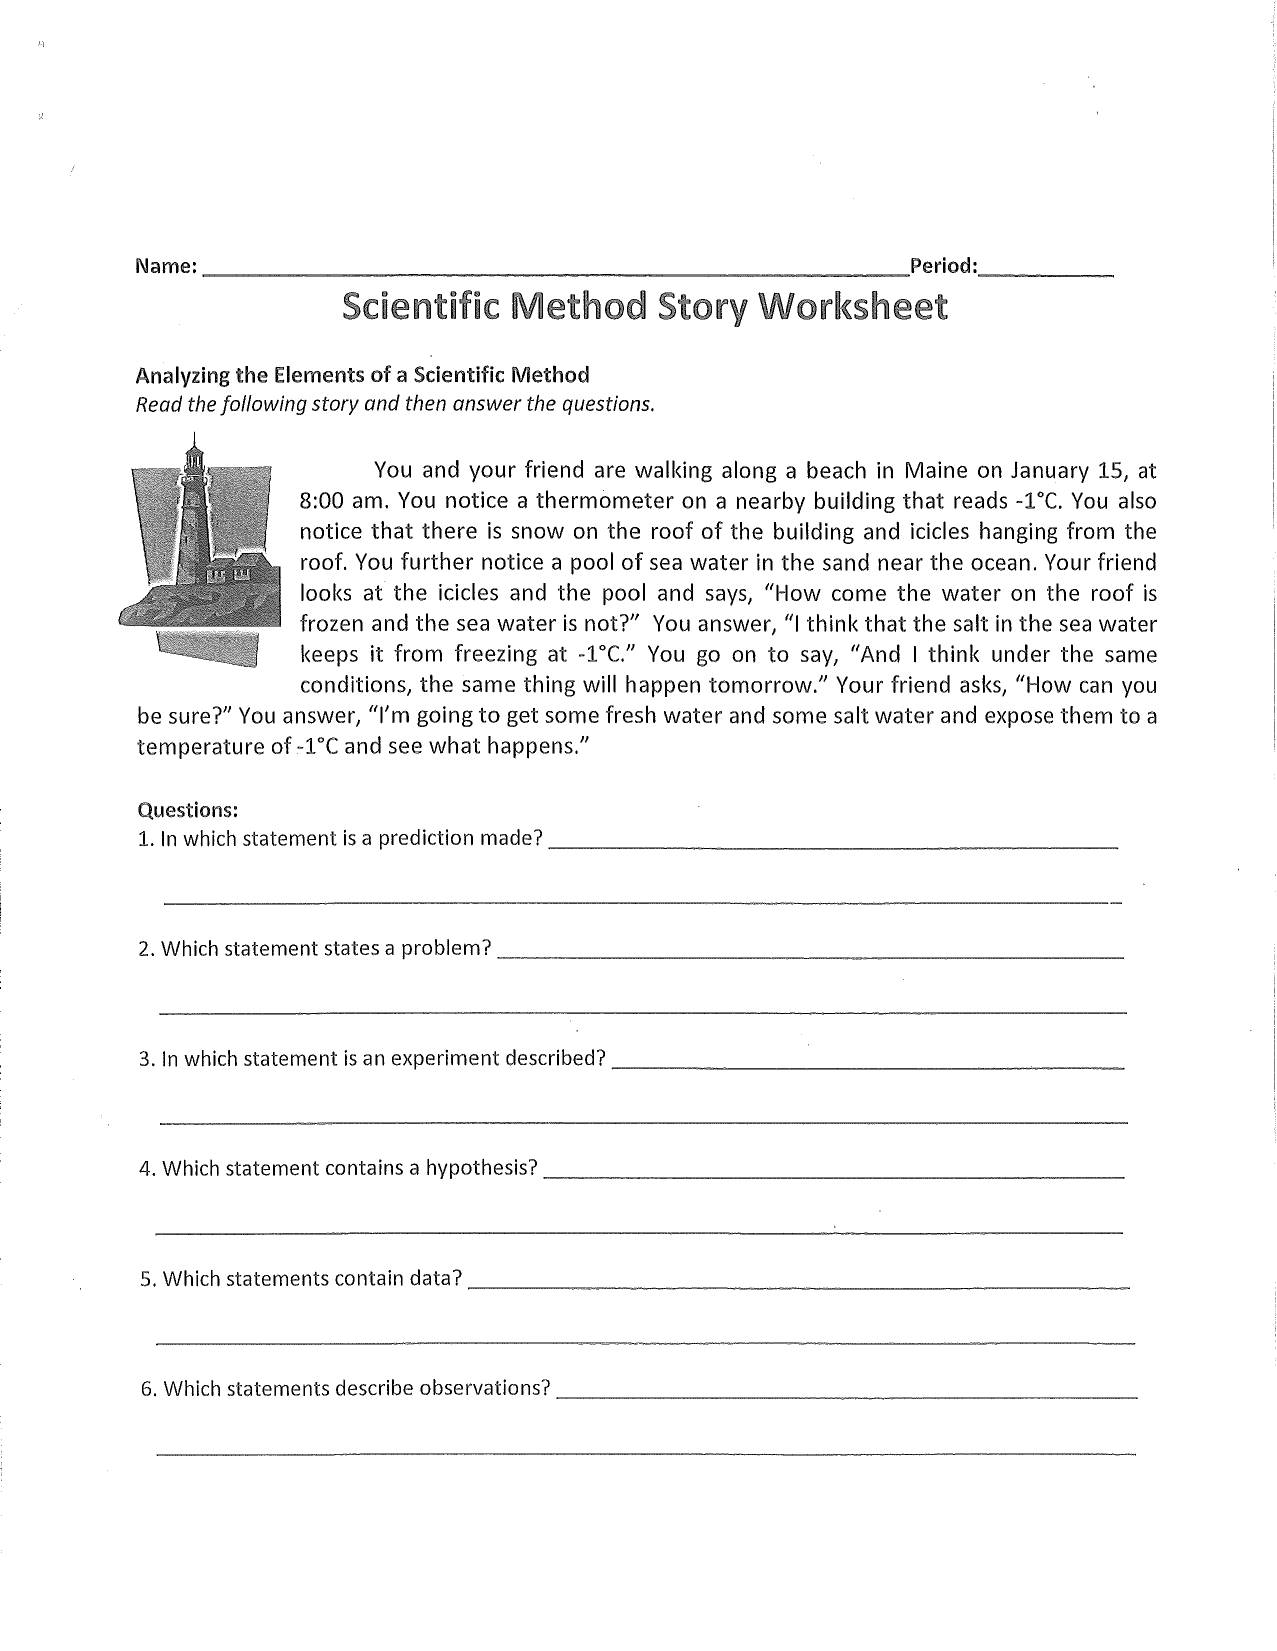 Simpsons Scientific Method Worksheet Answers Sharebrowse – Scientific Method Worksheet